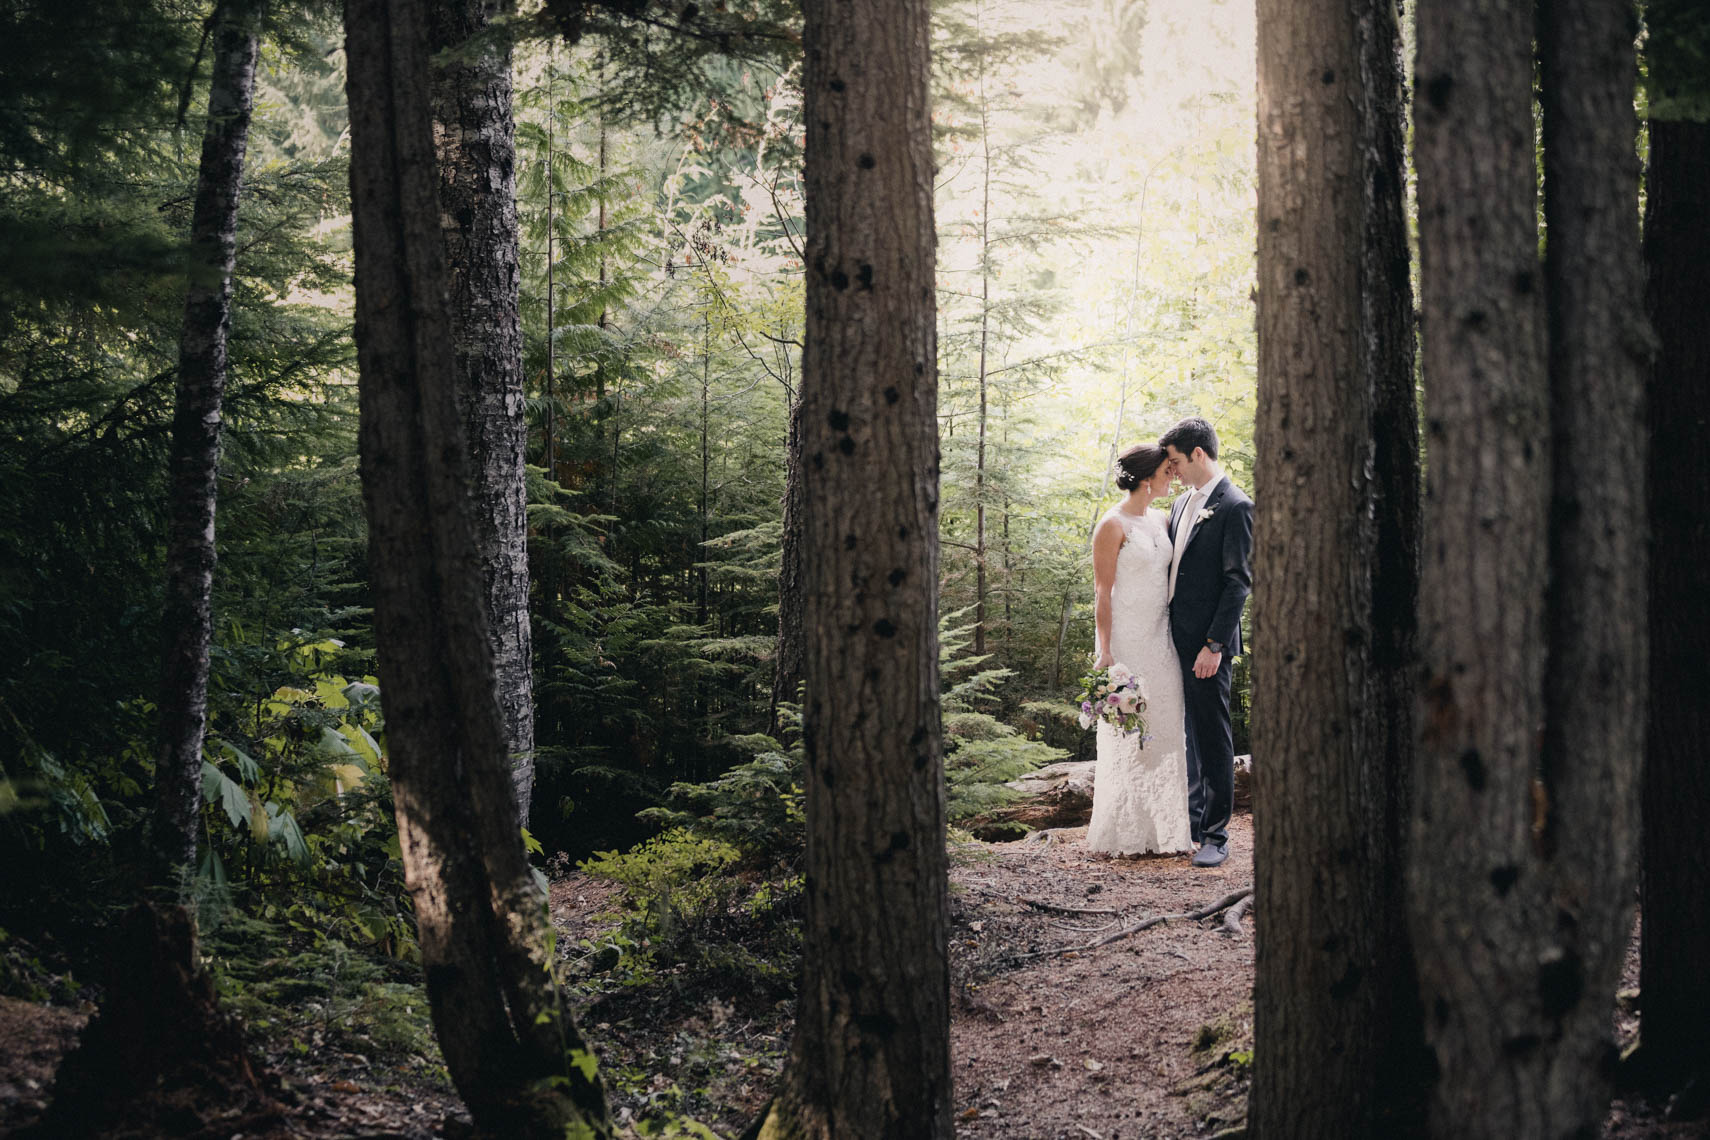 Bride and groom in the forest in Whistler, BC before their wedding